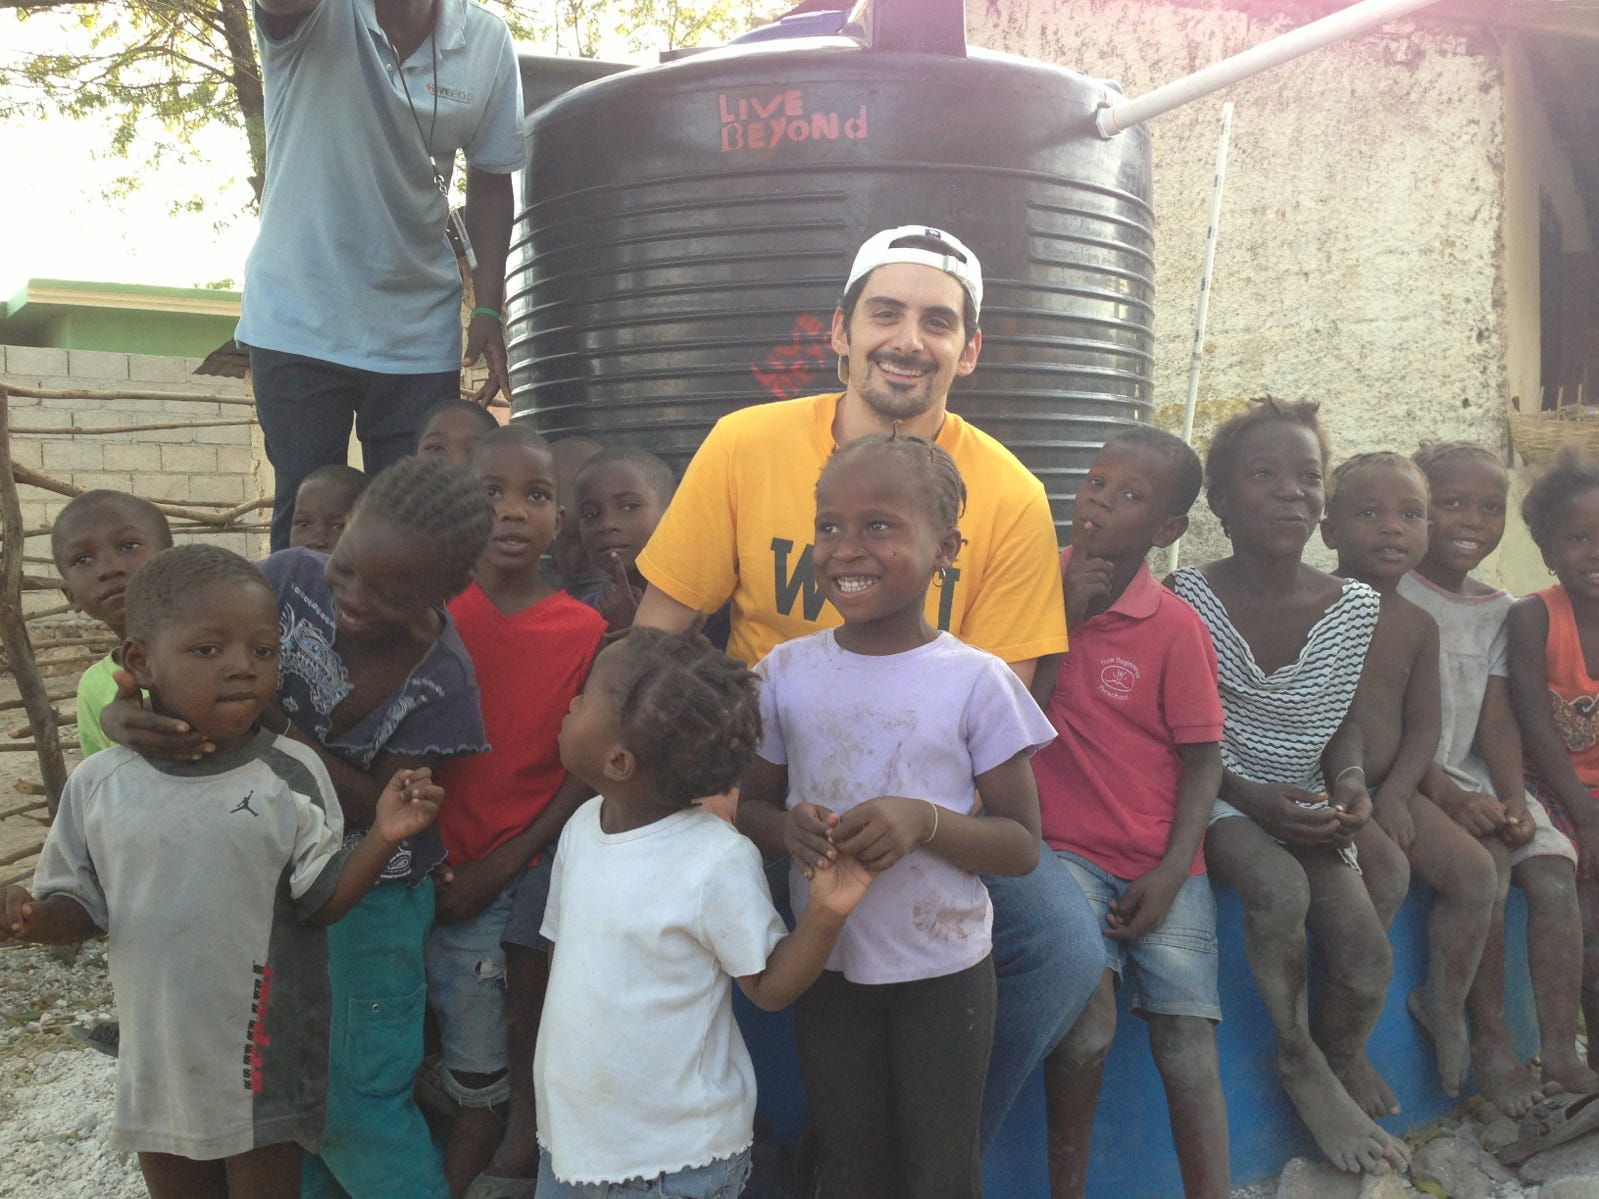 Brad Paisley stands with children in Haiti in front of a new water tank he helped install in February 2013.